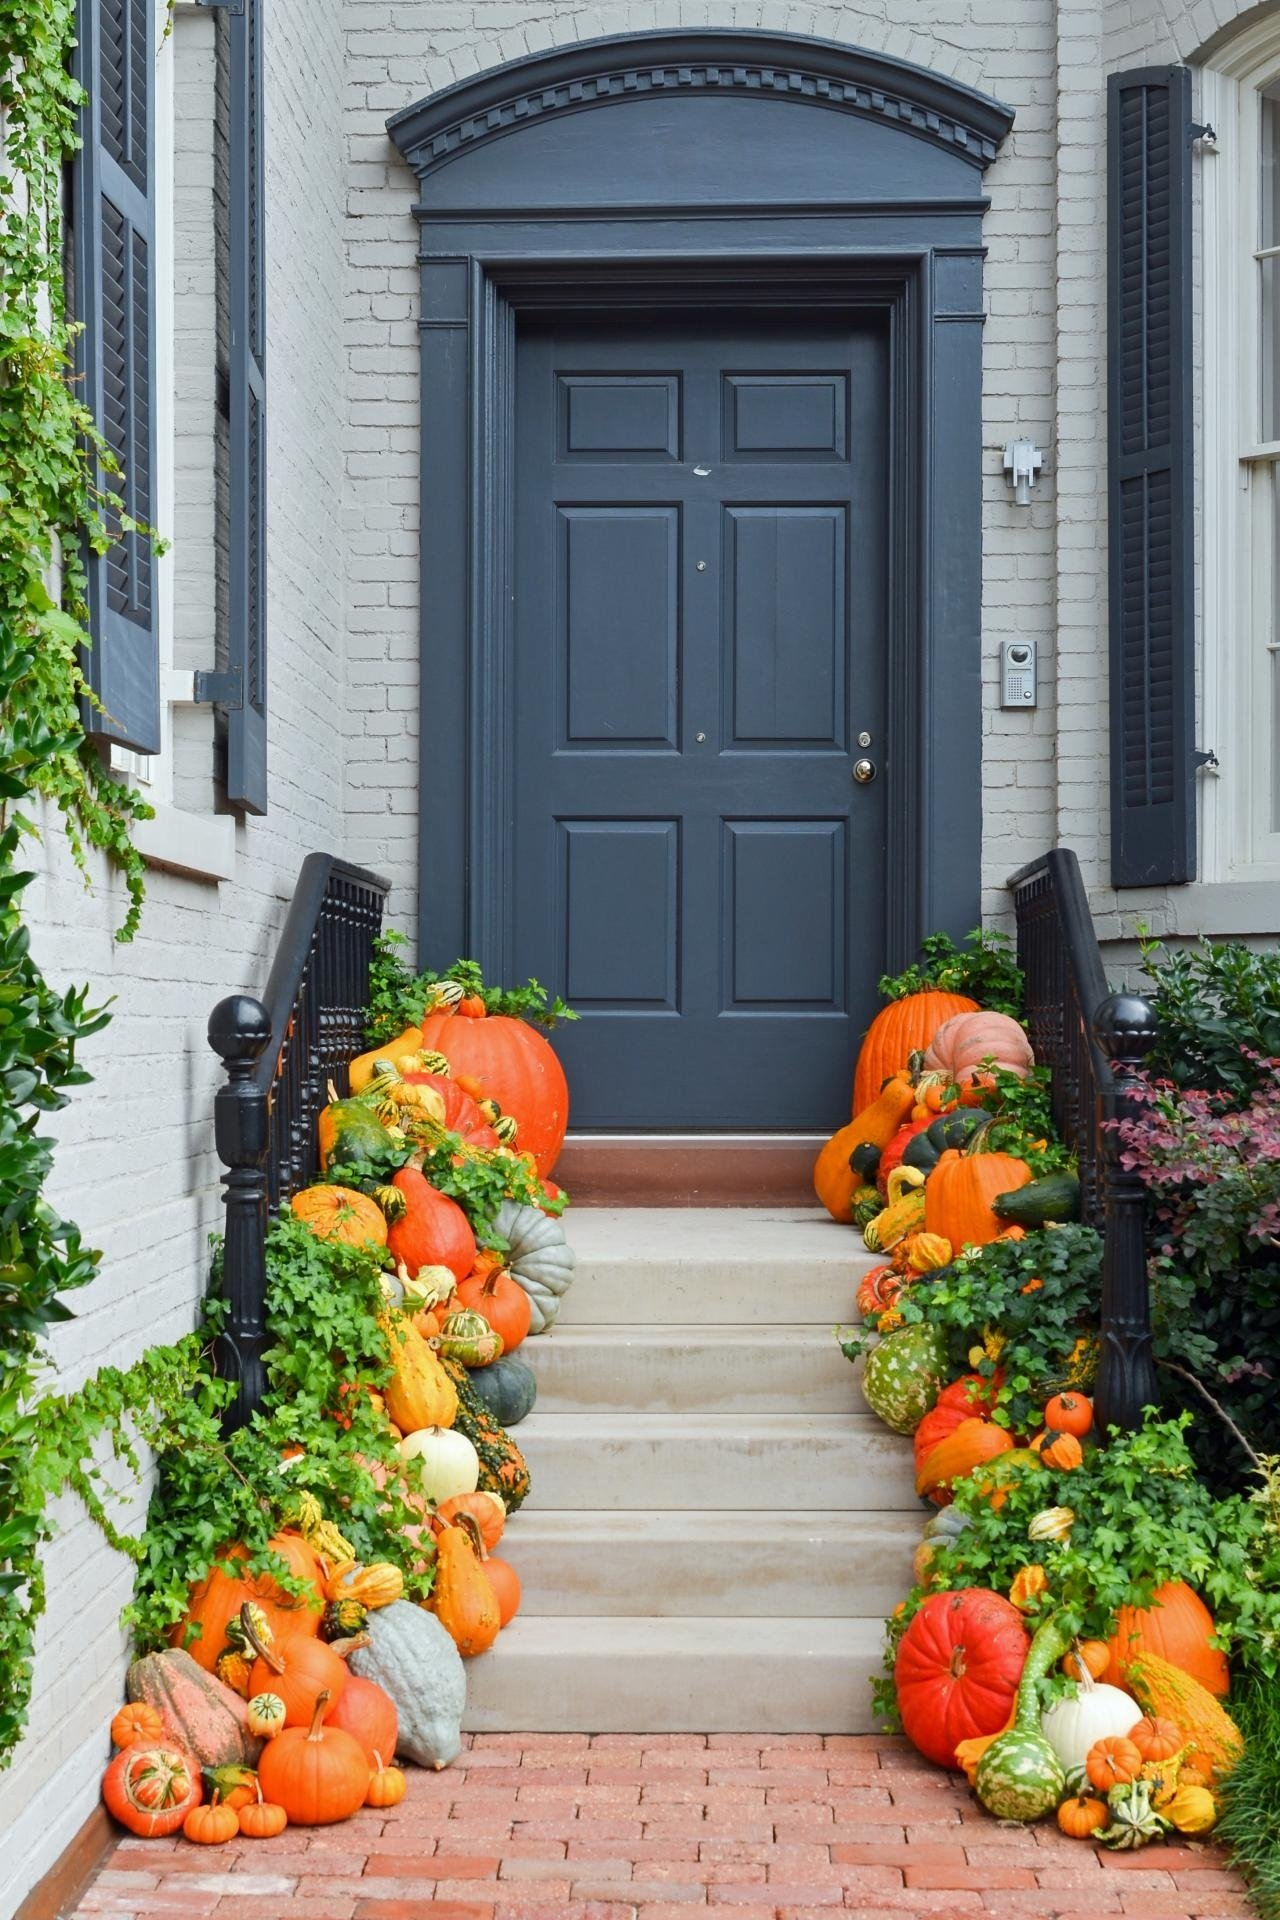 10 Awesome Fall Decorating Ideas For Outside find more fall decorating ideas get inspired for with these outdoor 2020